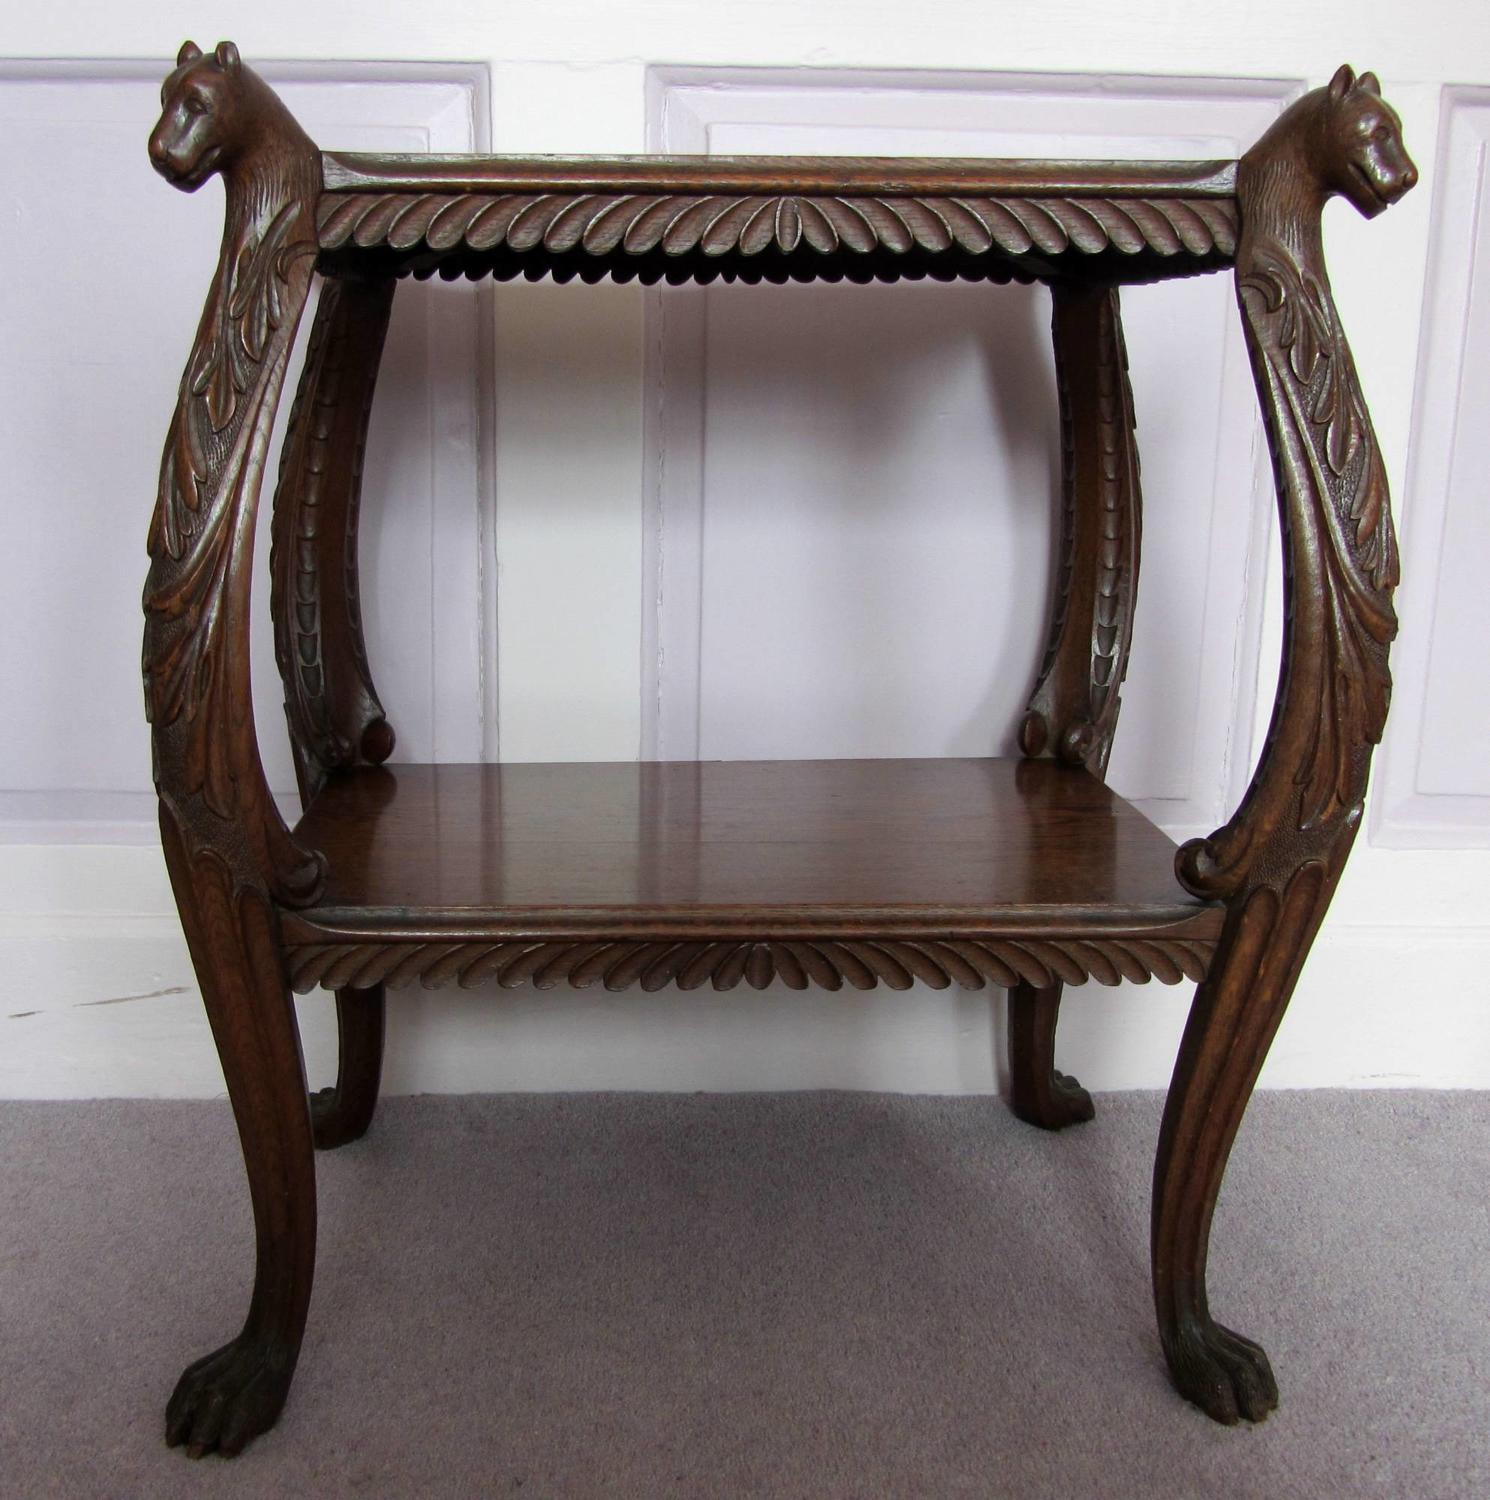 An Anglo-Indian Hardwood Side Table with Cats Head Terminals